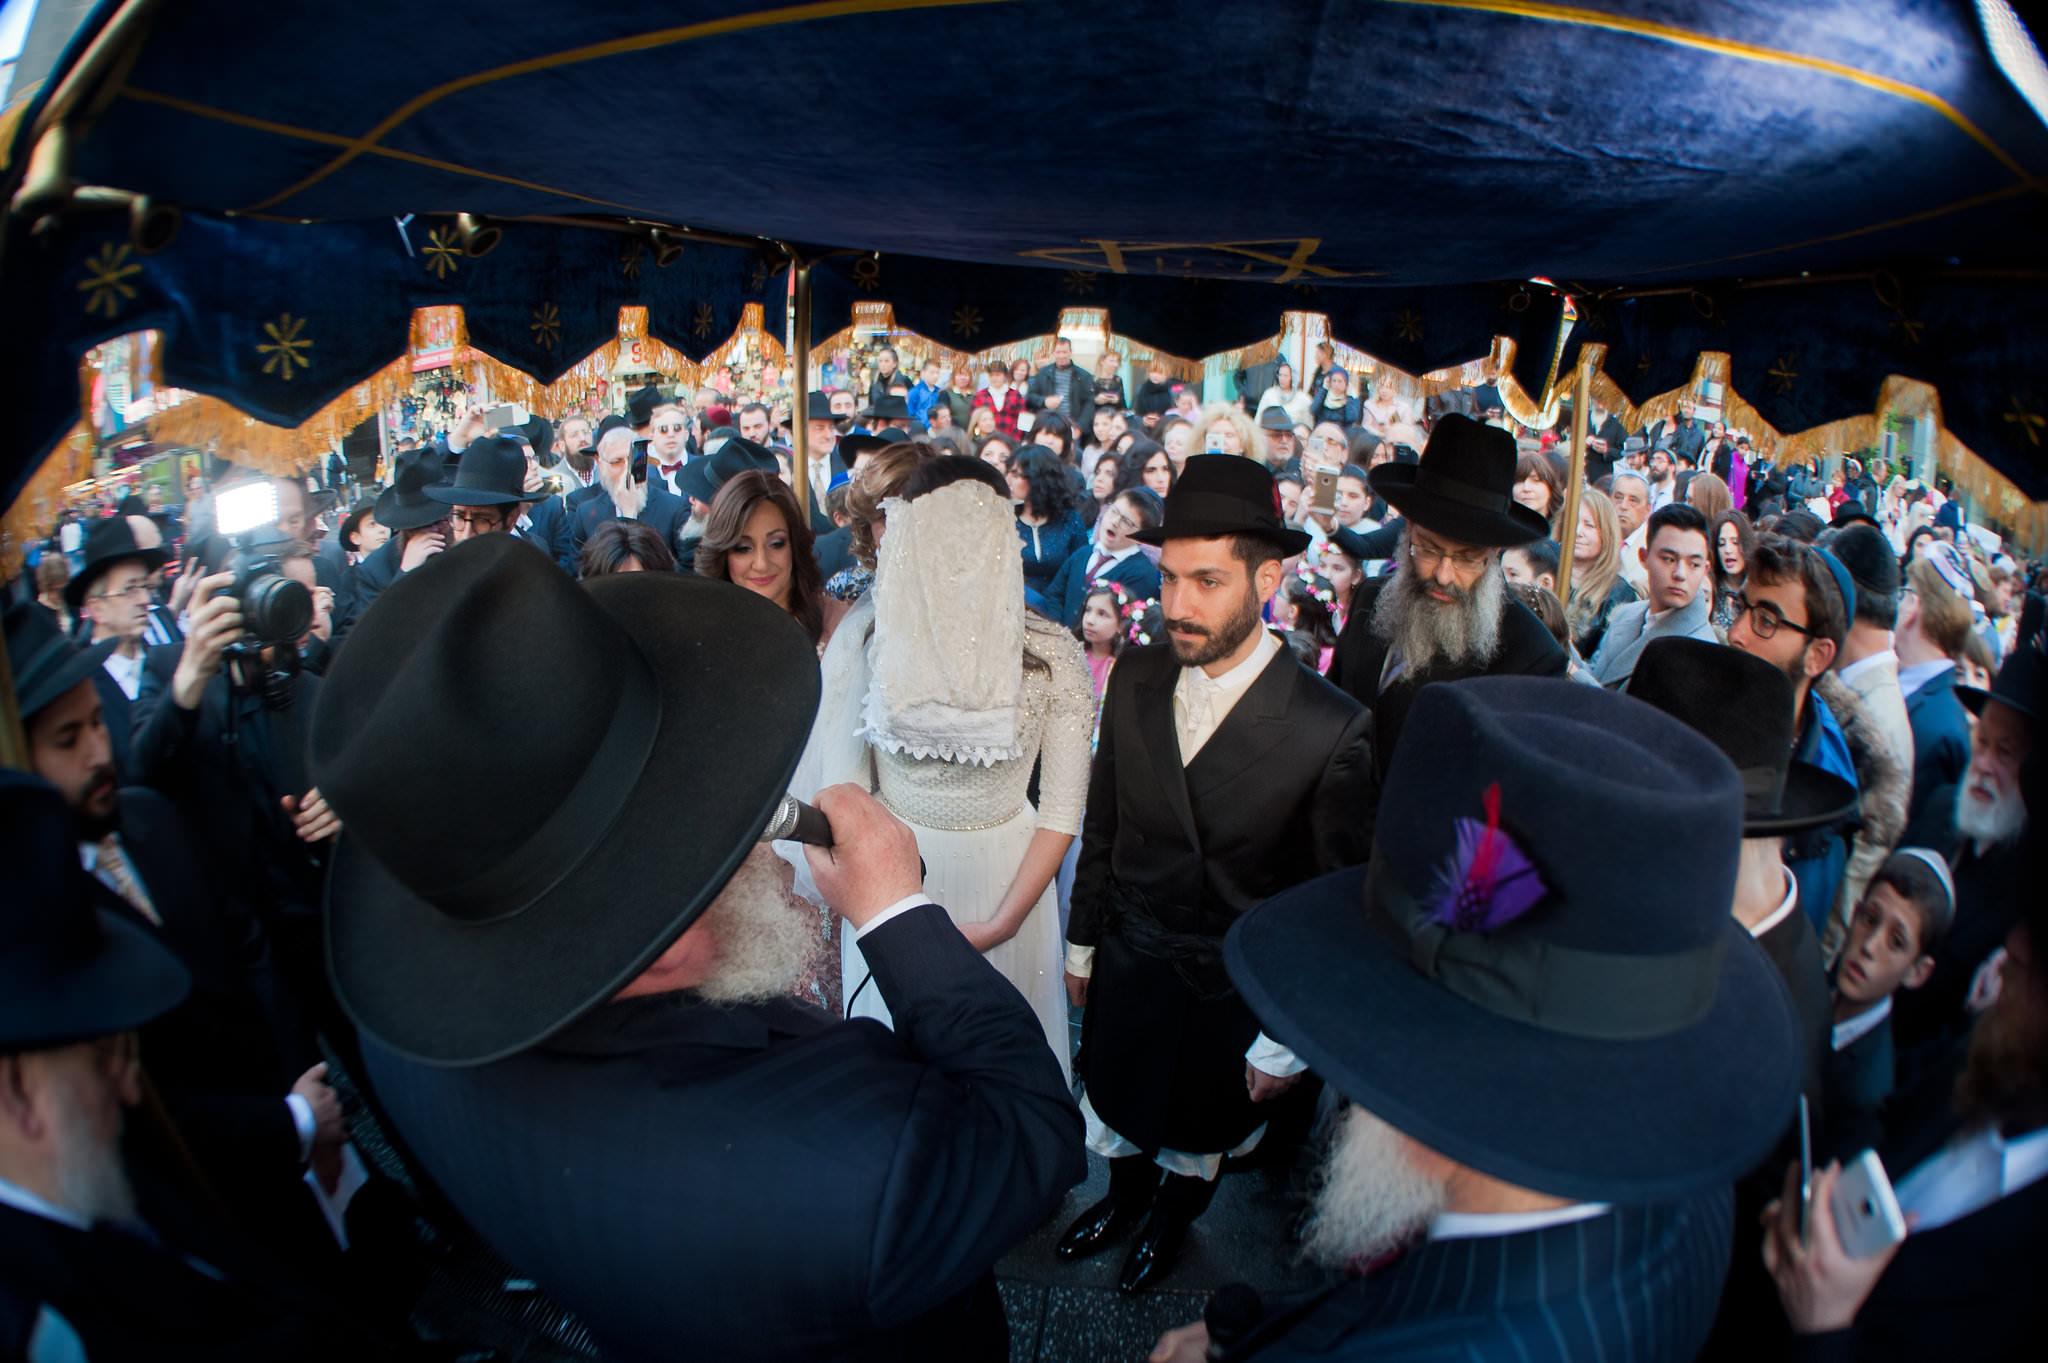 Historic Chabad Orthodox Jewish Wedding in Times Square Manhattan New York NYC Photo by Chaim Schvarcz, bride, groom, chuppah, under the chuppah